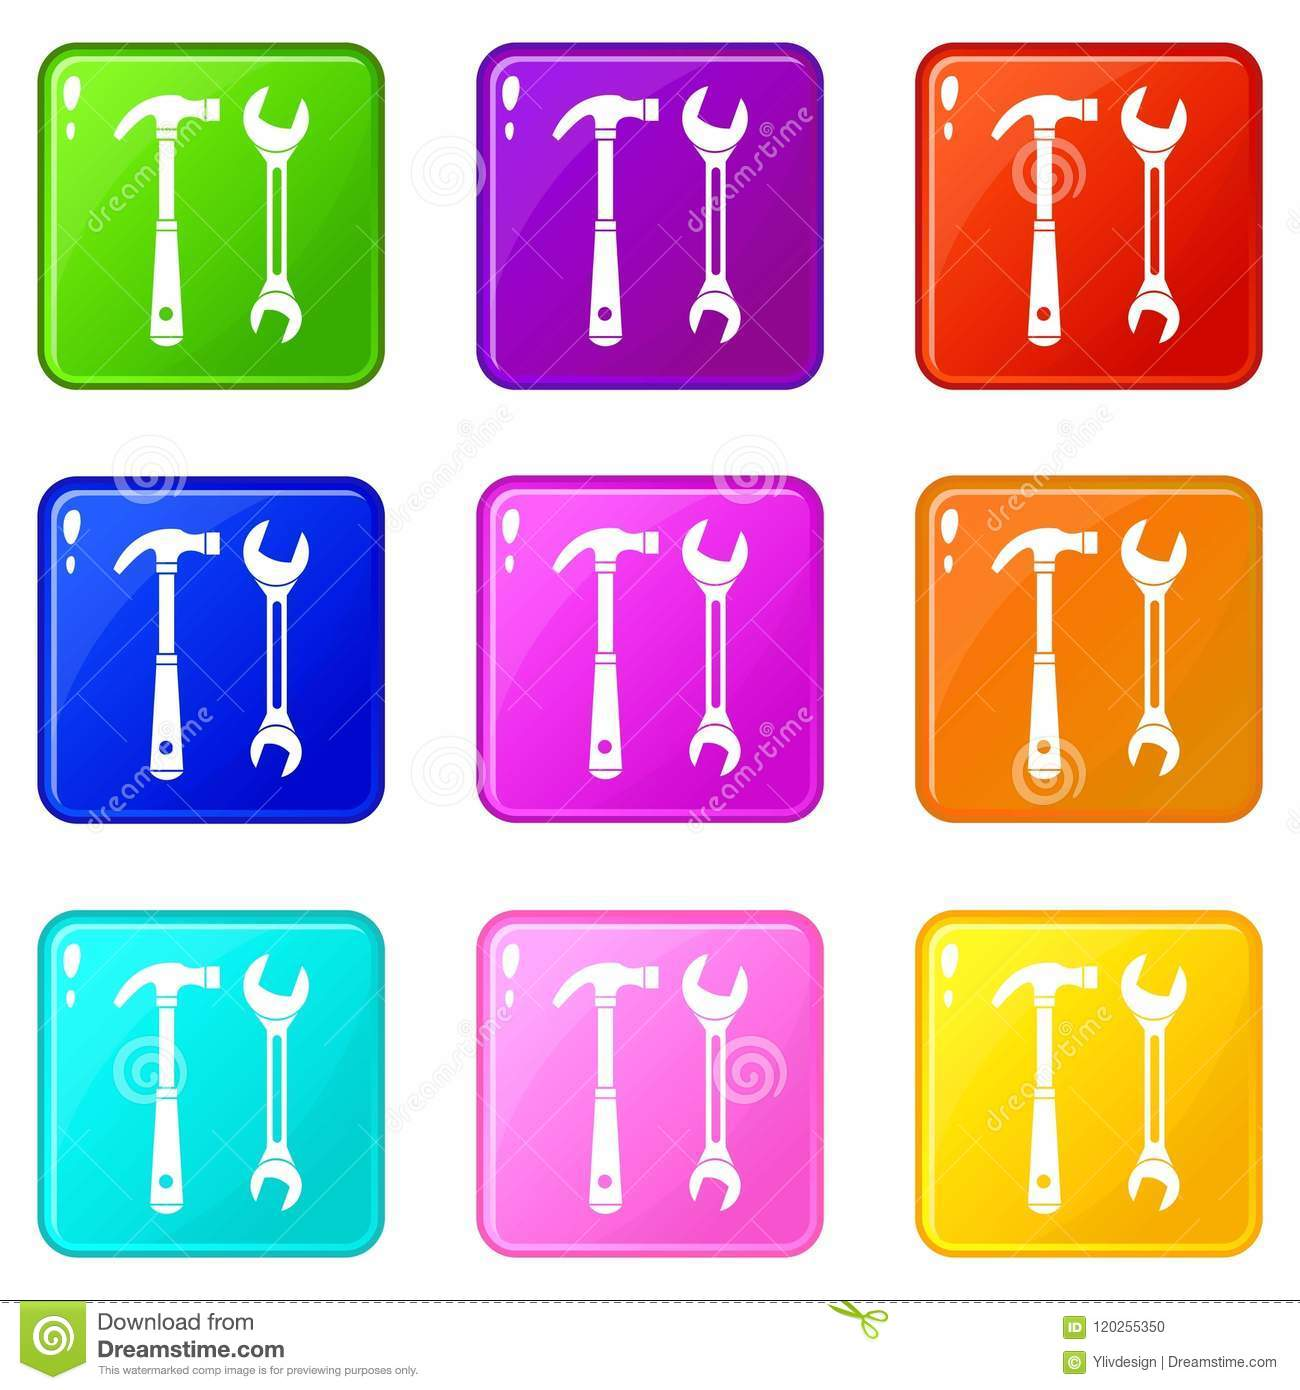 Hammer and wrench set 9 stock vector. Illustration of ...